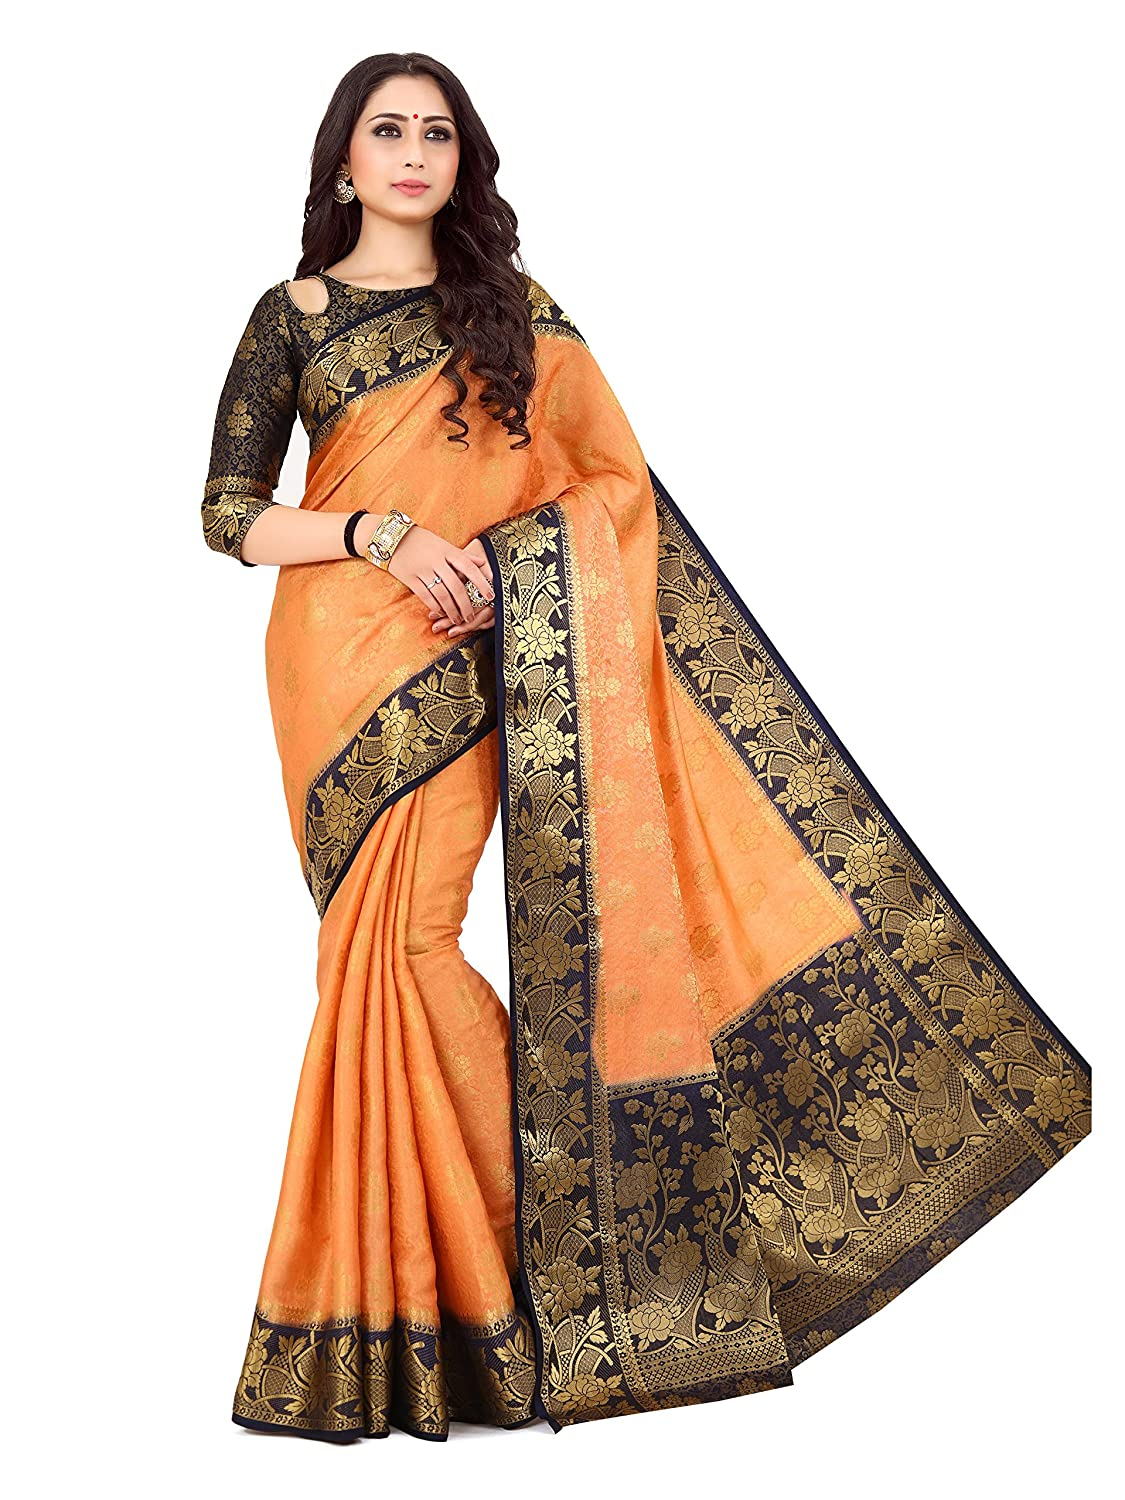 1e43d2c1ba65ea Mimosa By Kupinda Women's Art Silk saree Kanjivaram Style Color : Peach  (4160-214-2D-PCH-NVY): Amazon.in: Clothing & Accessories